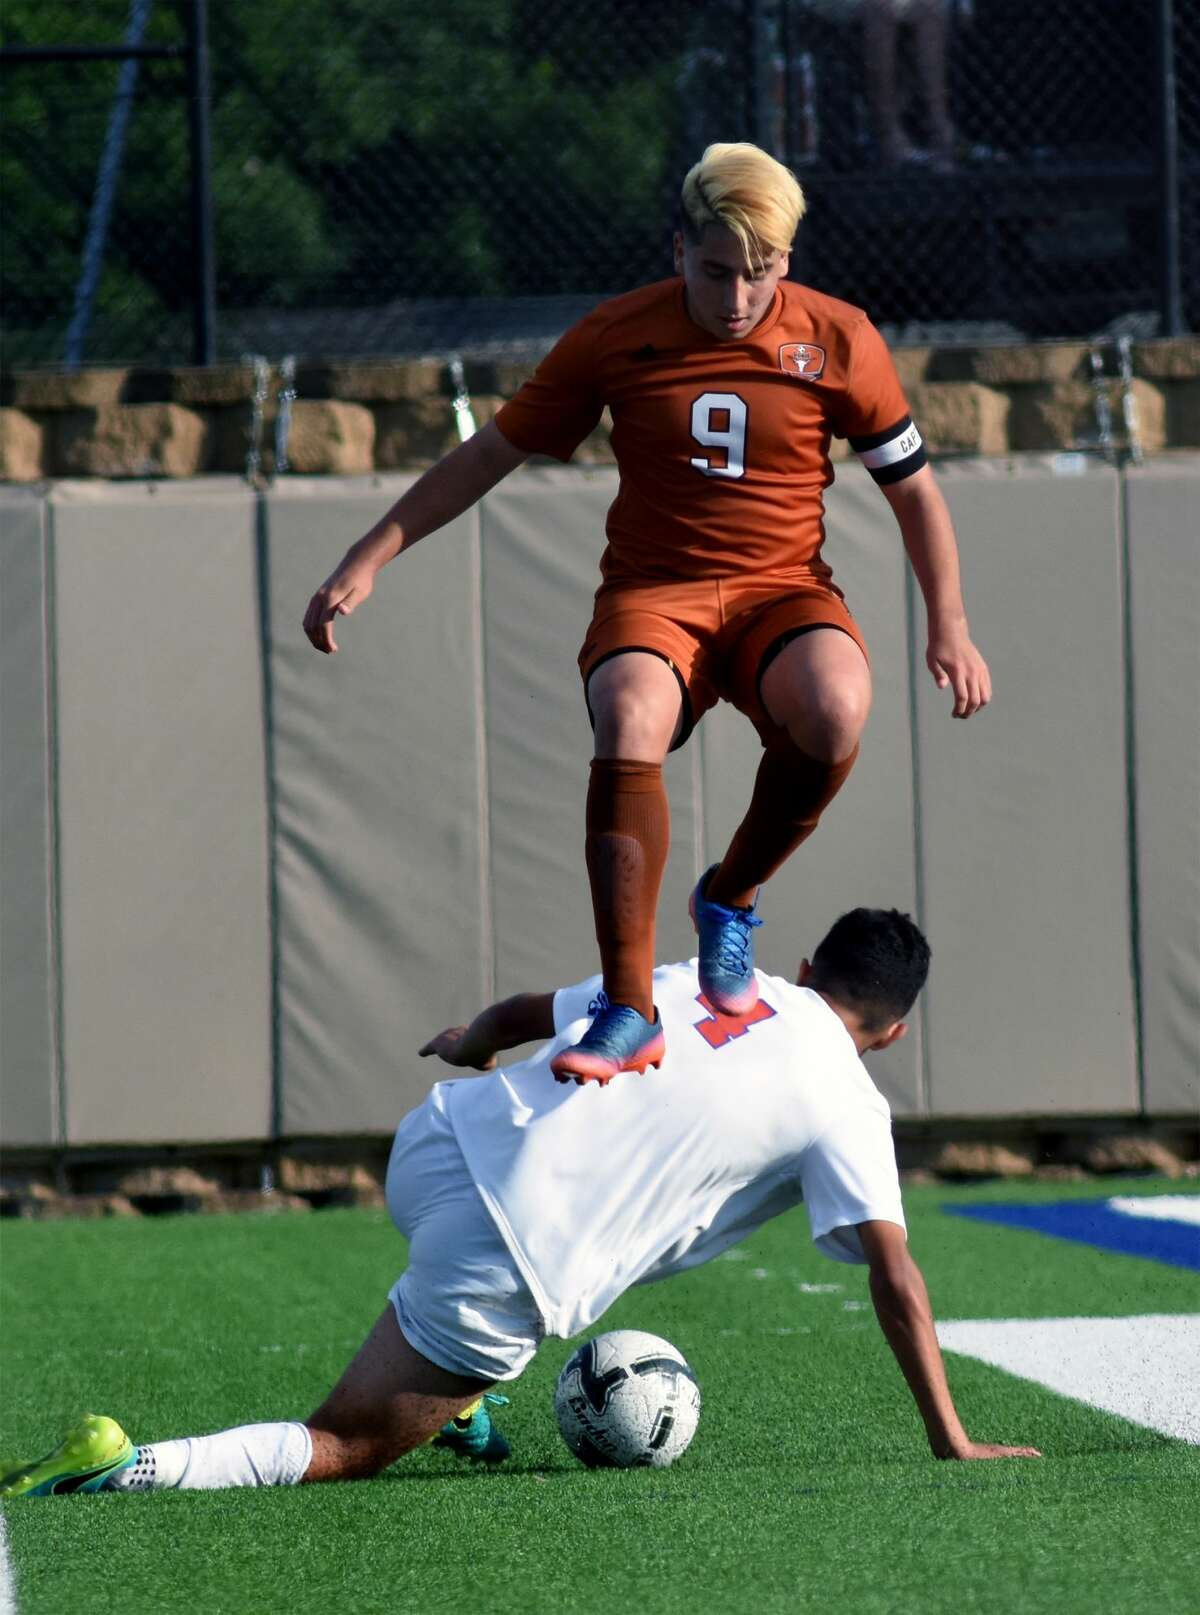 Dobie senior forward Sabino Lozano (9) jumps over Arlington Houston's Mario Trevizo while making a play in the first period of their Class 6A Boys semifinal matchup at the 2017 UIL Soccer State Championships at Birkelbach Field in Georgetown on April 14, 2017. (Photo by Jerry Baker/Freelance)